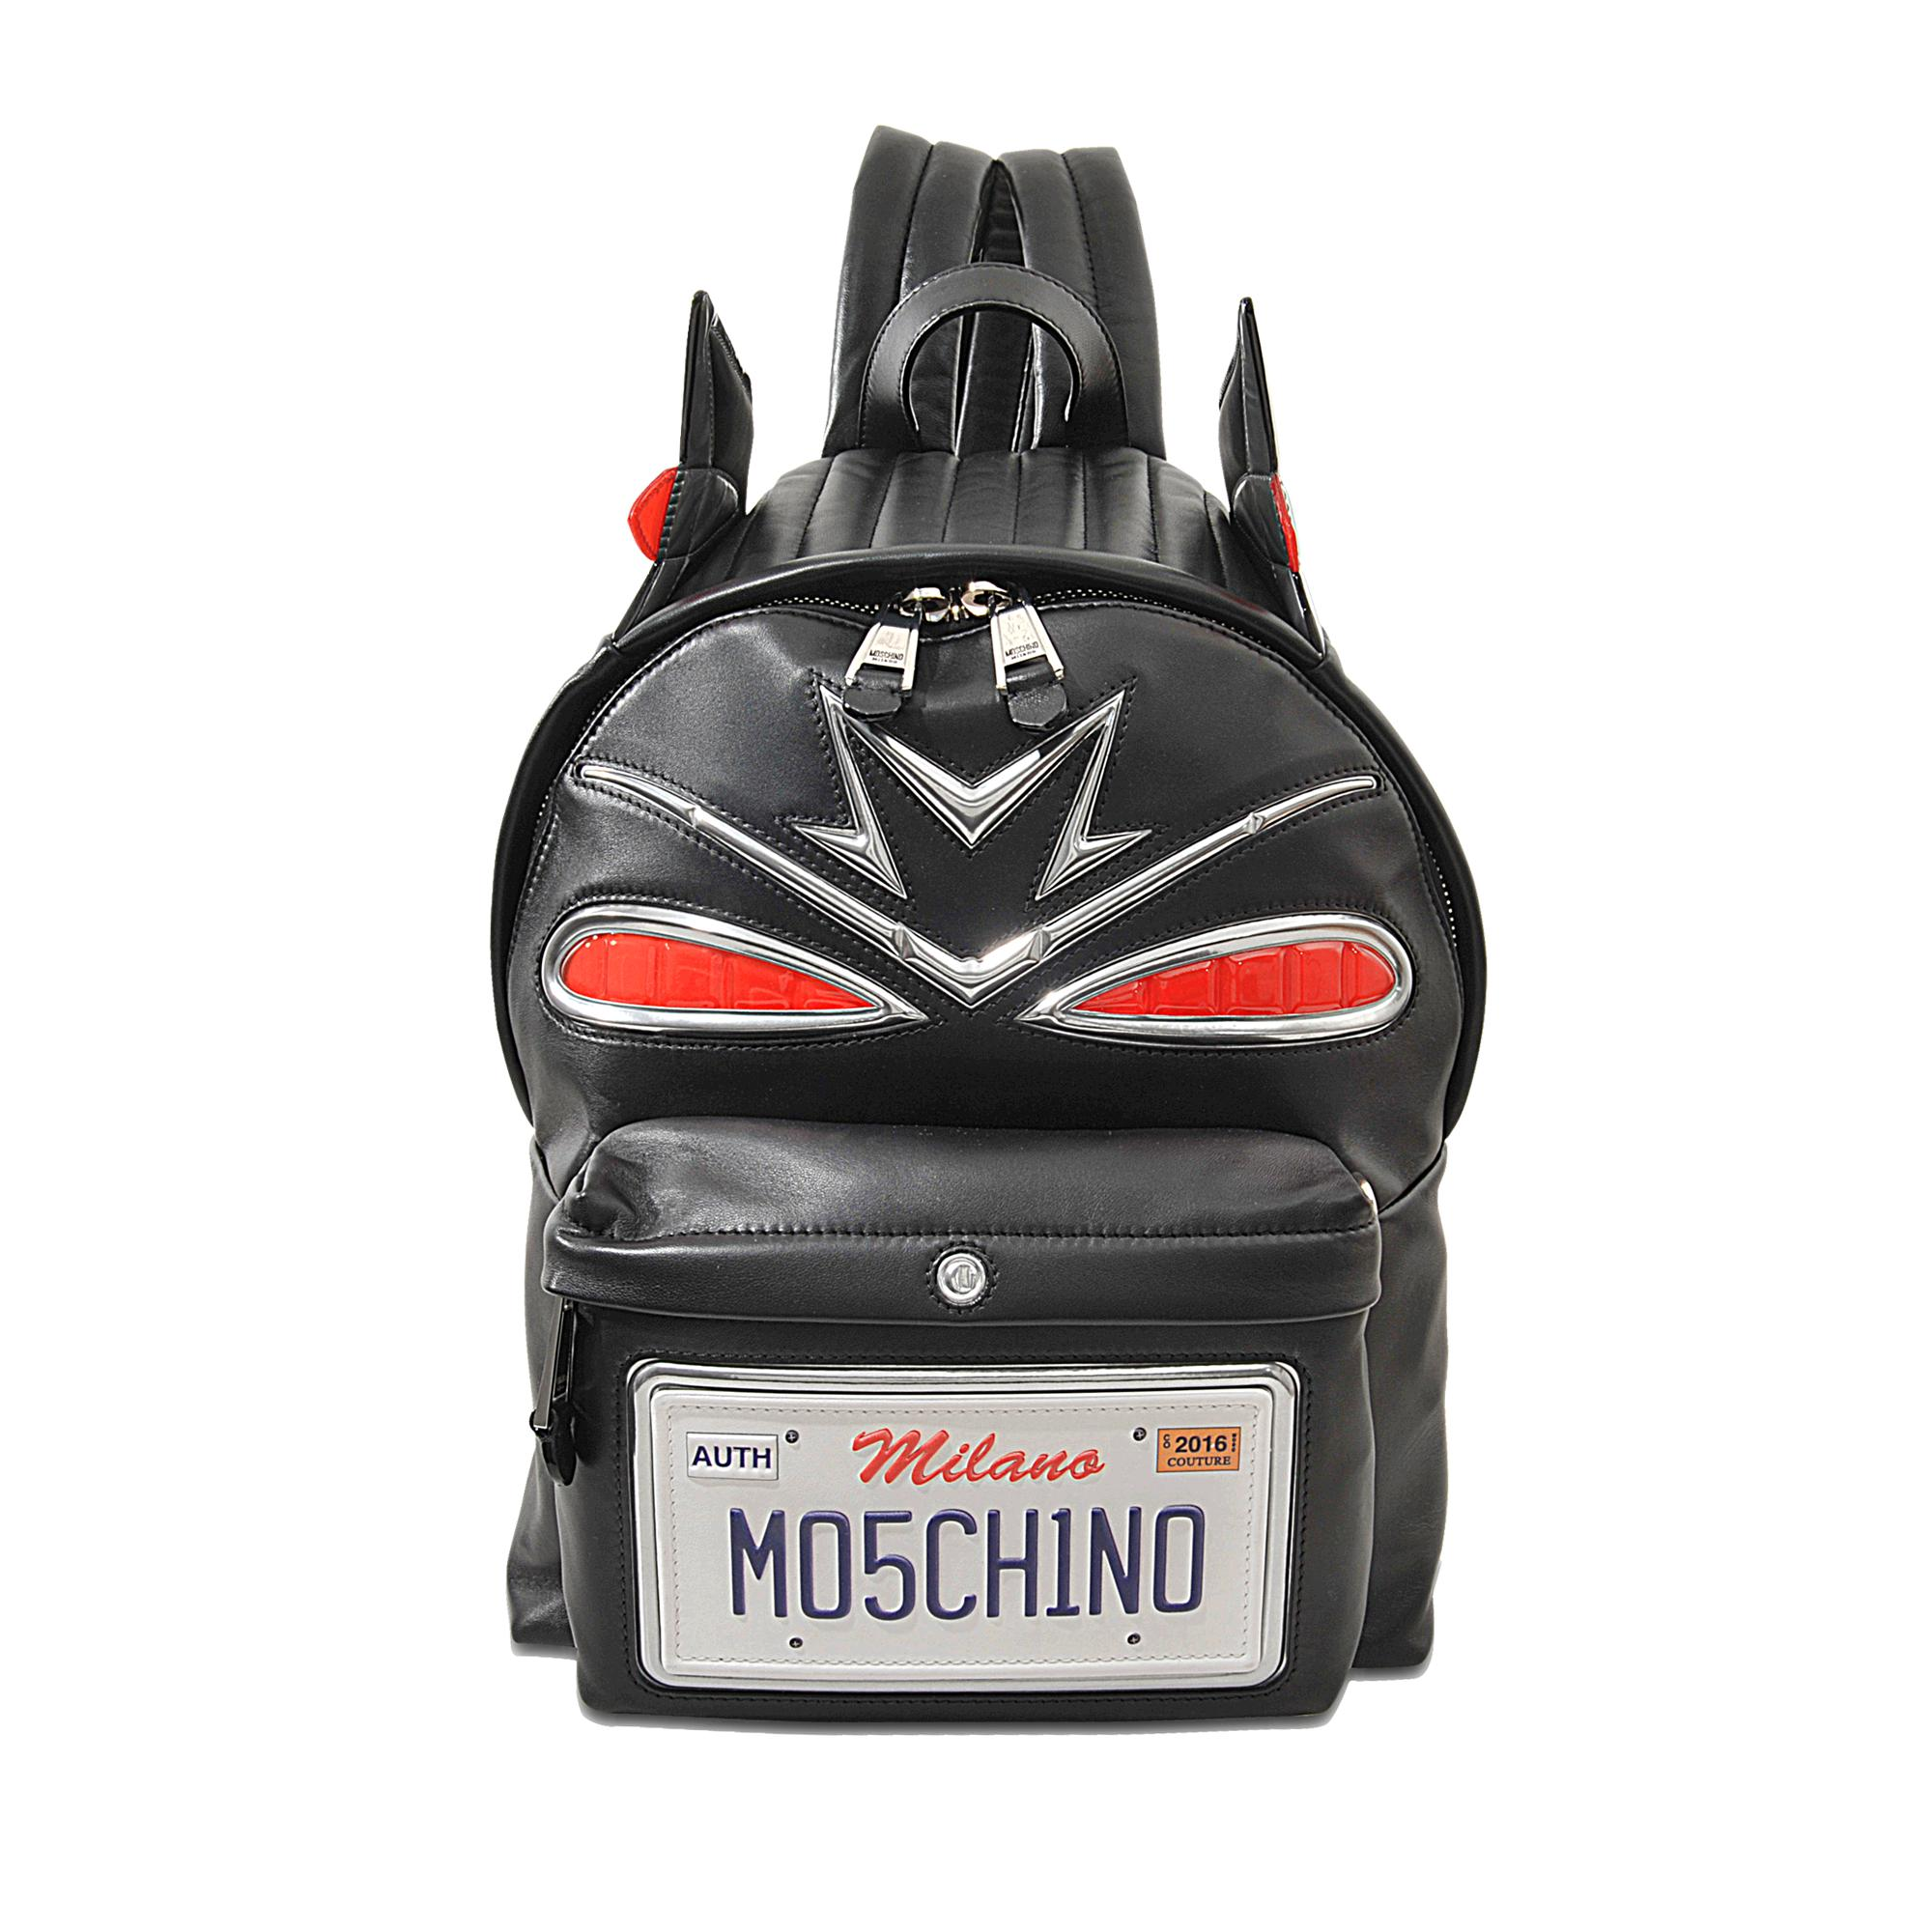 Cadillac Backpack Moschino dmyyoUp